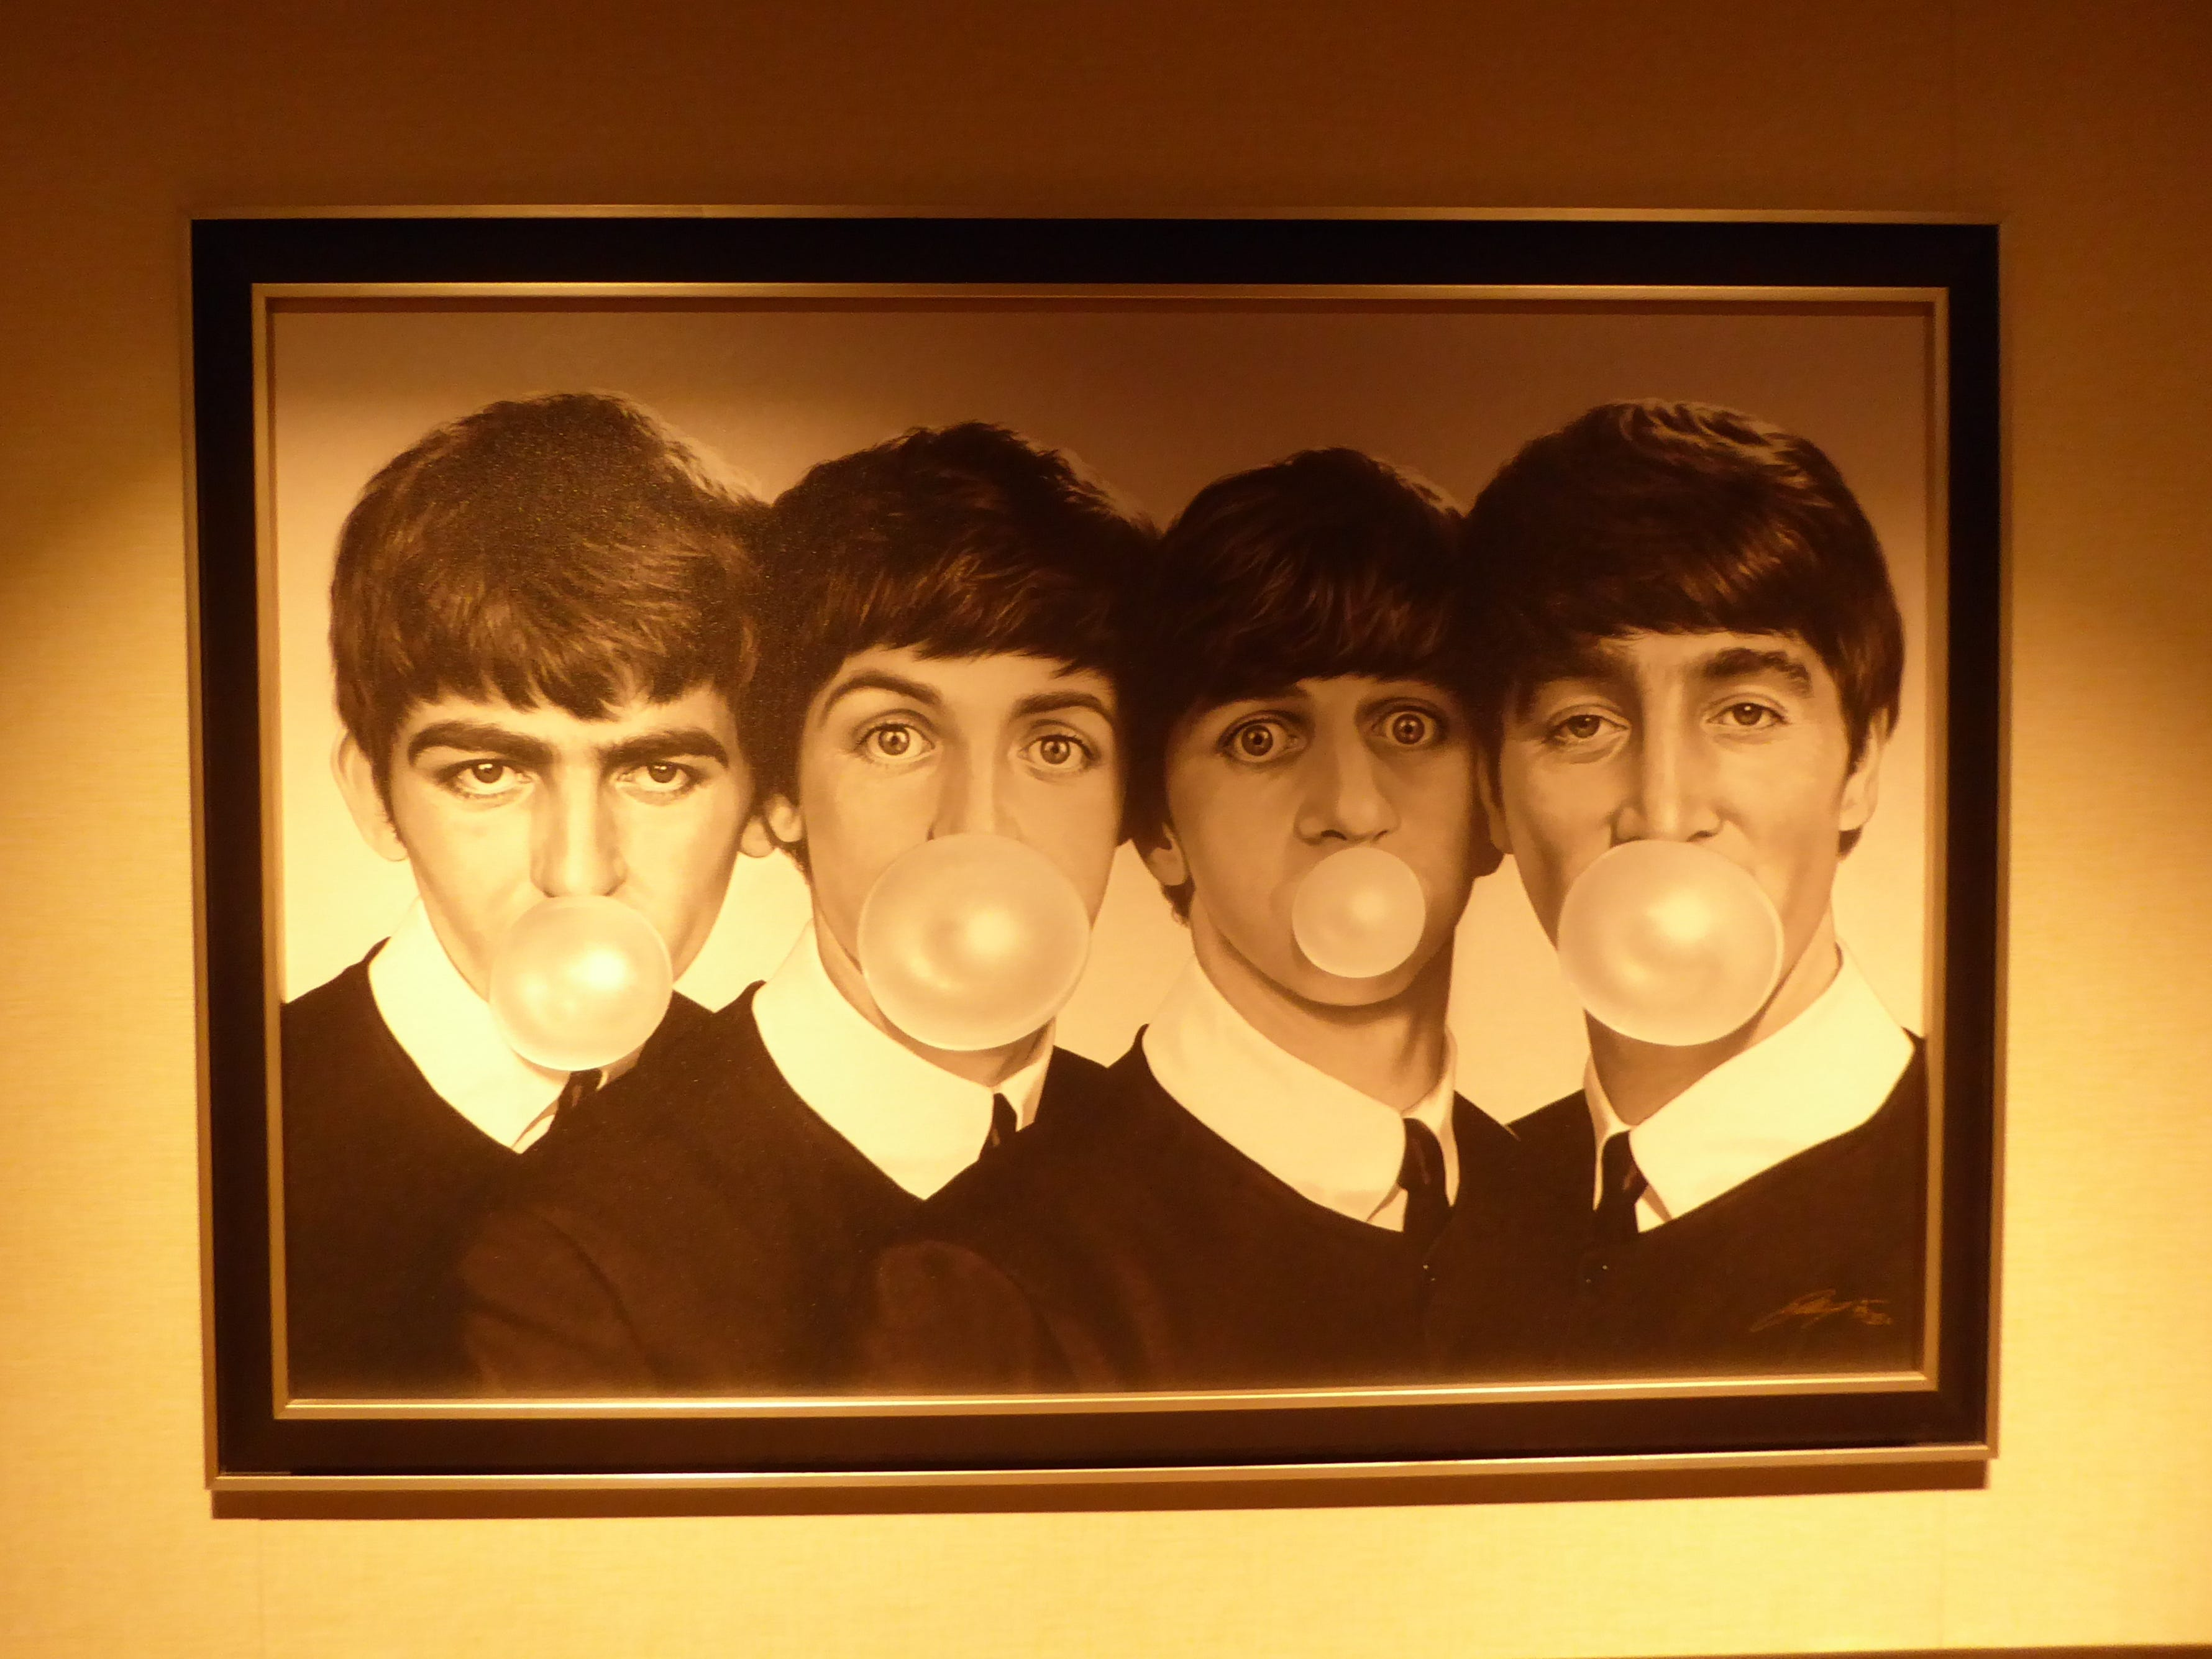 This painting of the Beatles may be one of the most revered artworks on board the Nieuw Statendam.